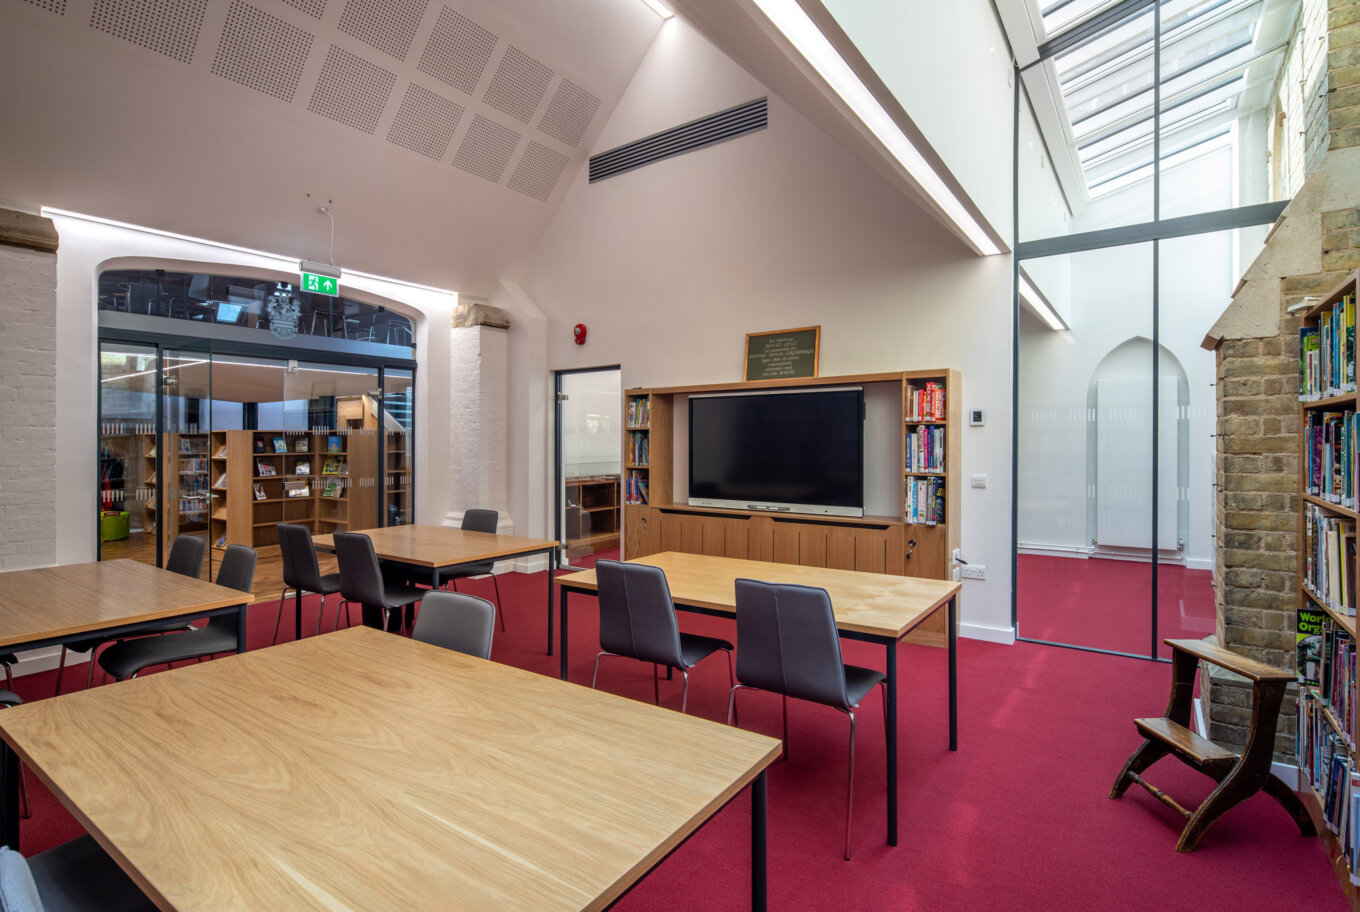 New Room, New Library